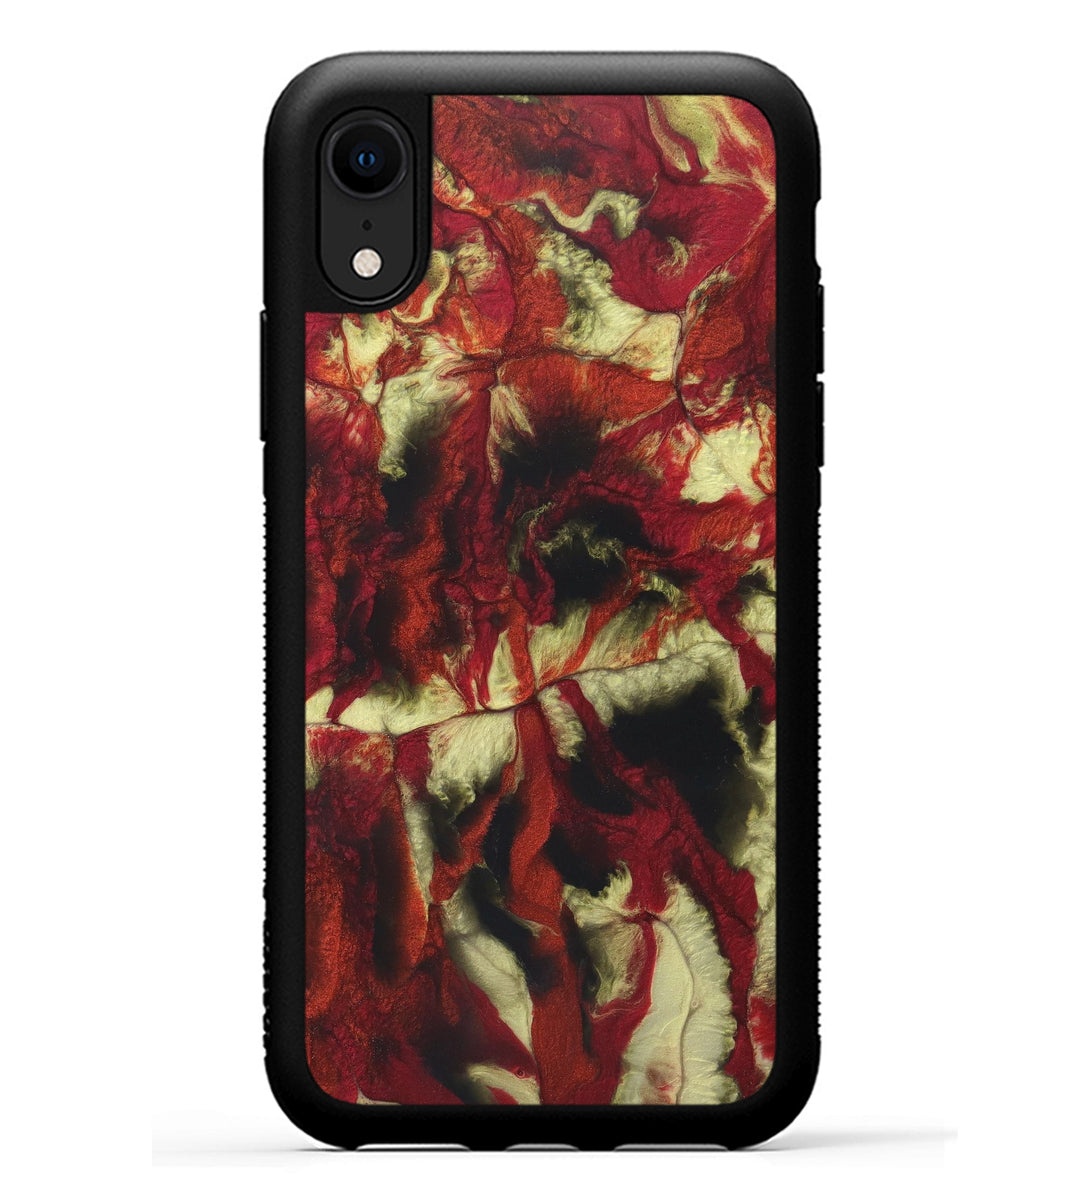 iPhone Xr ResinArt Phone Case - Liliana (Dark Red, 347943)